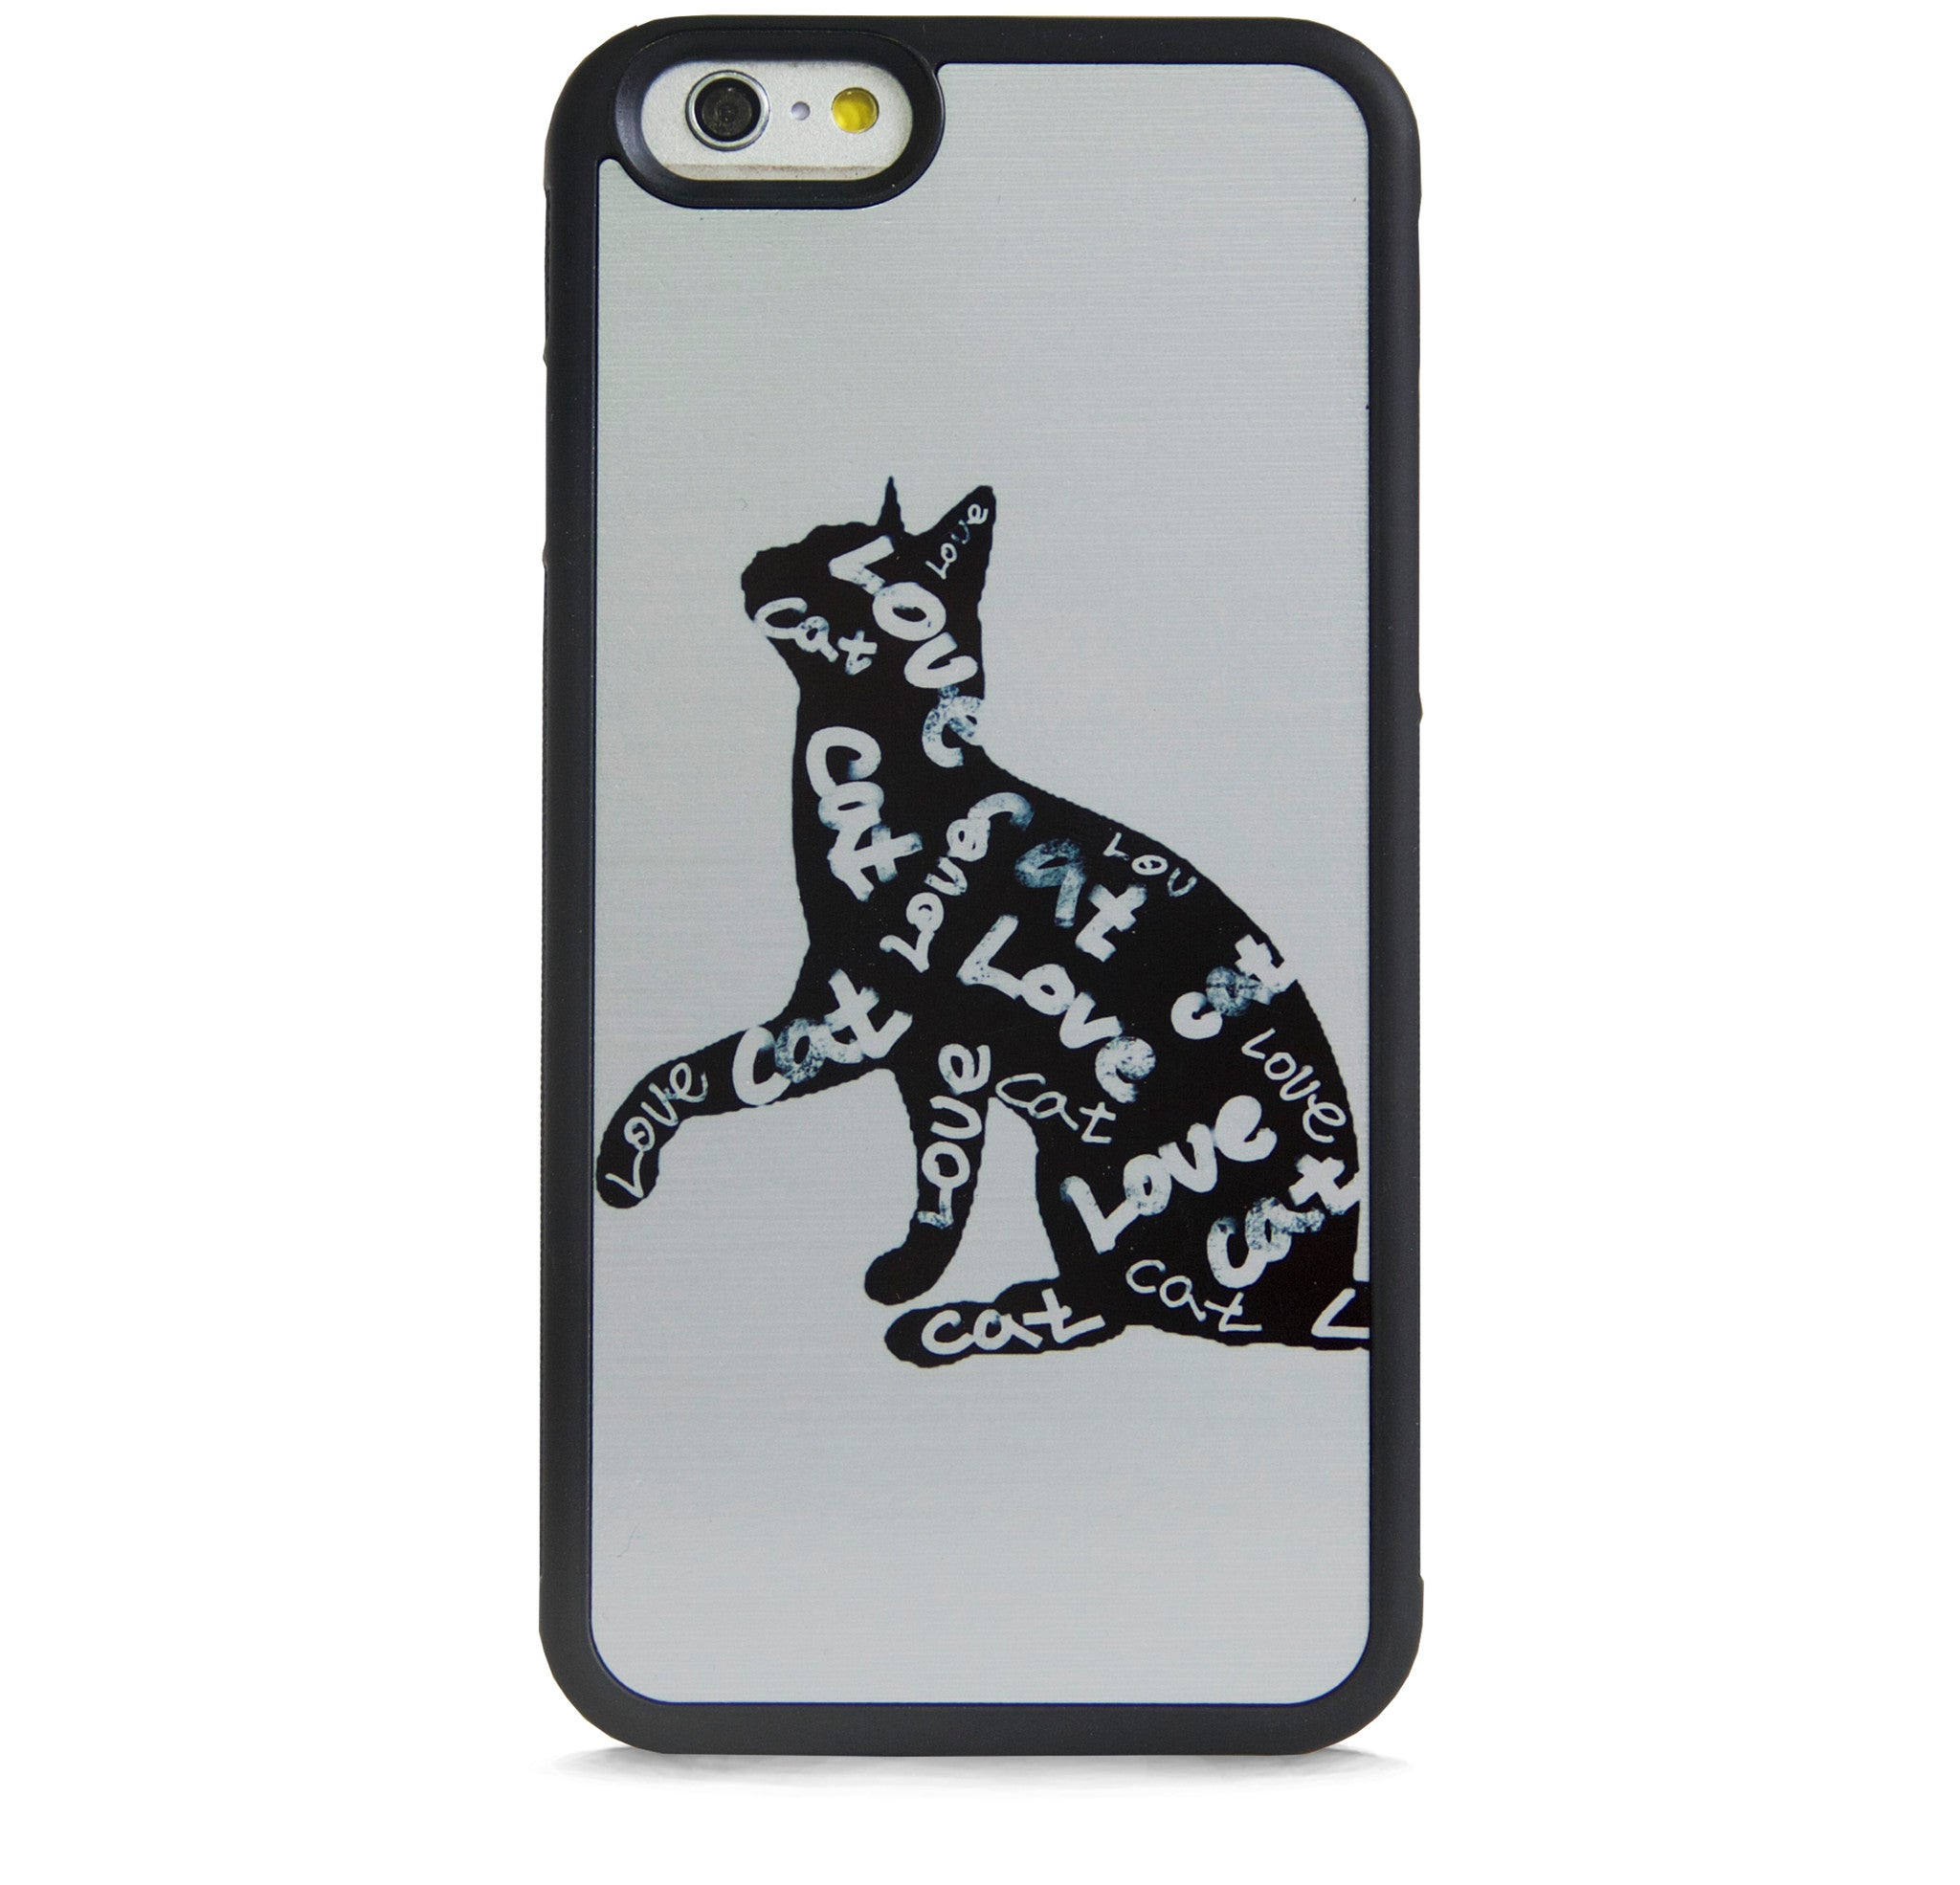 ILLUST TYPO LOVE CATS ON SILVER FOR IPHONE 6/6s PLUS